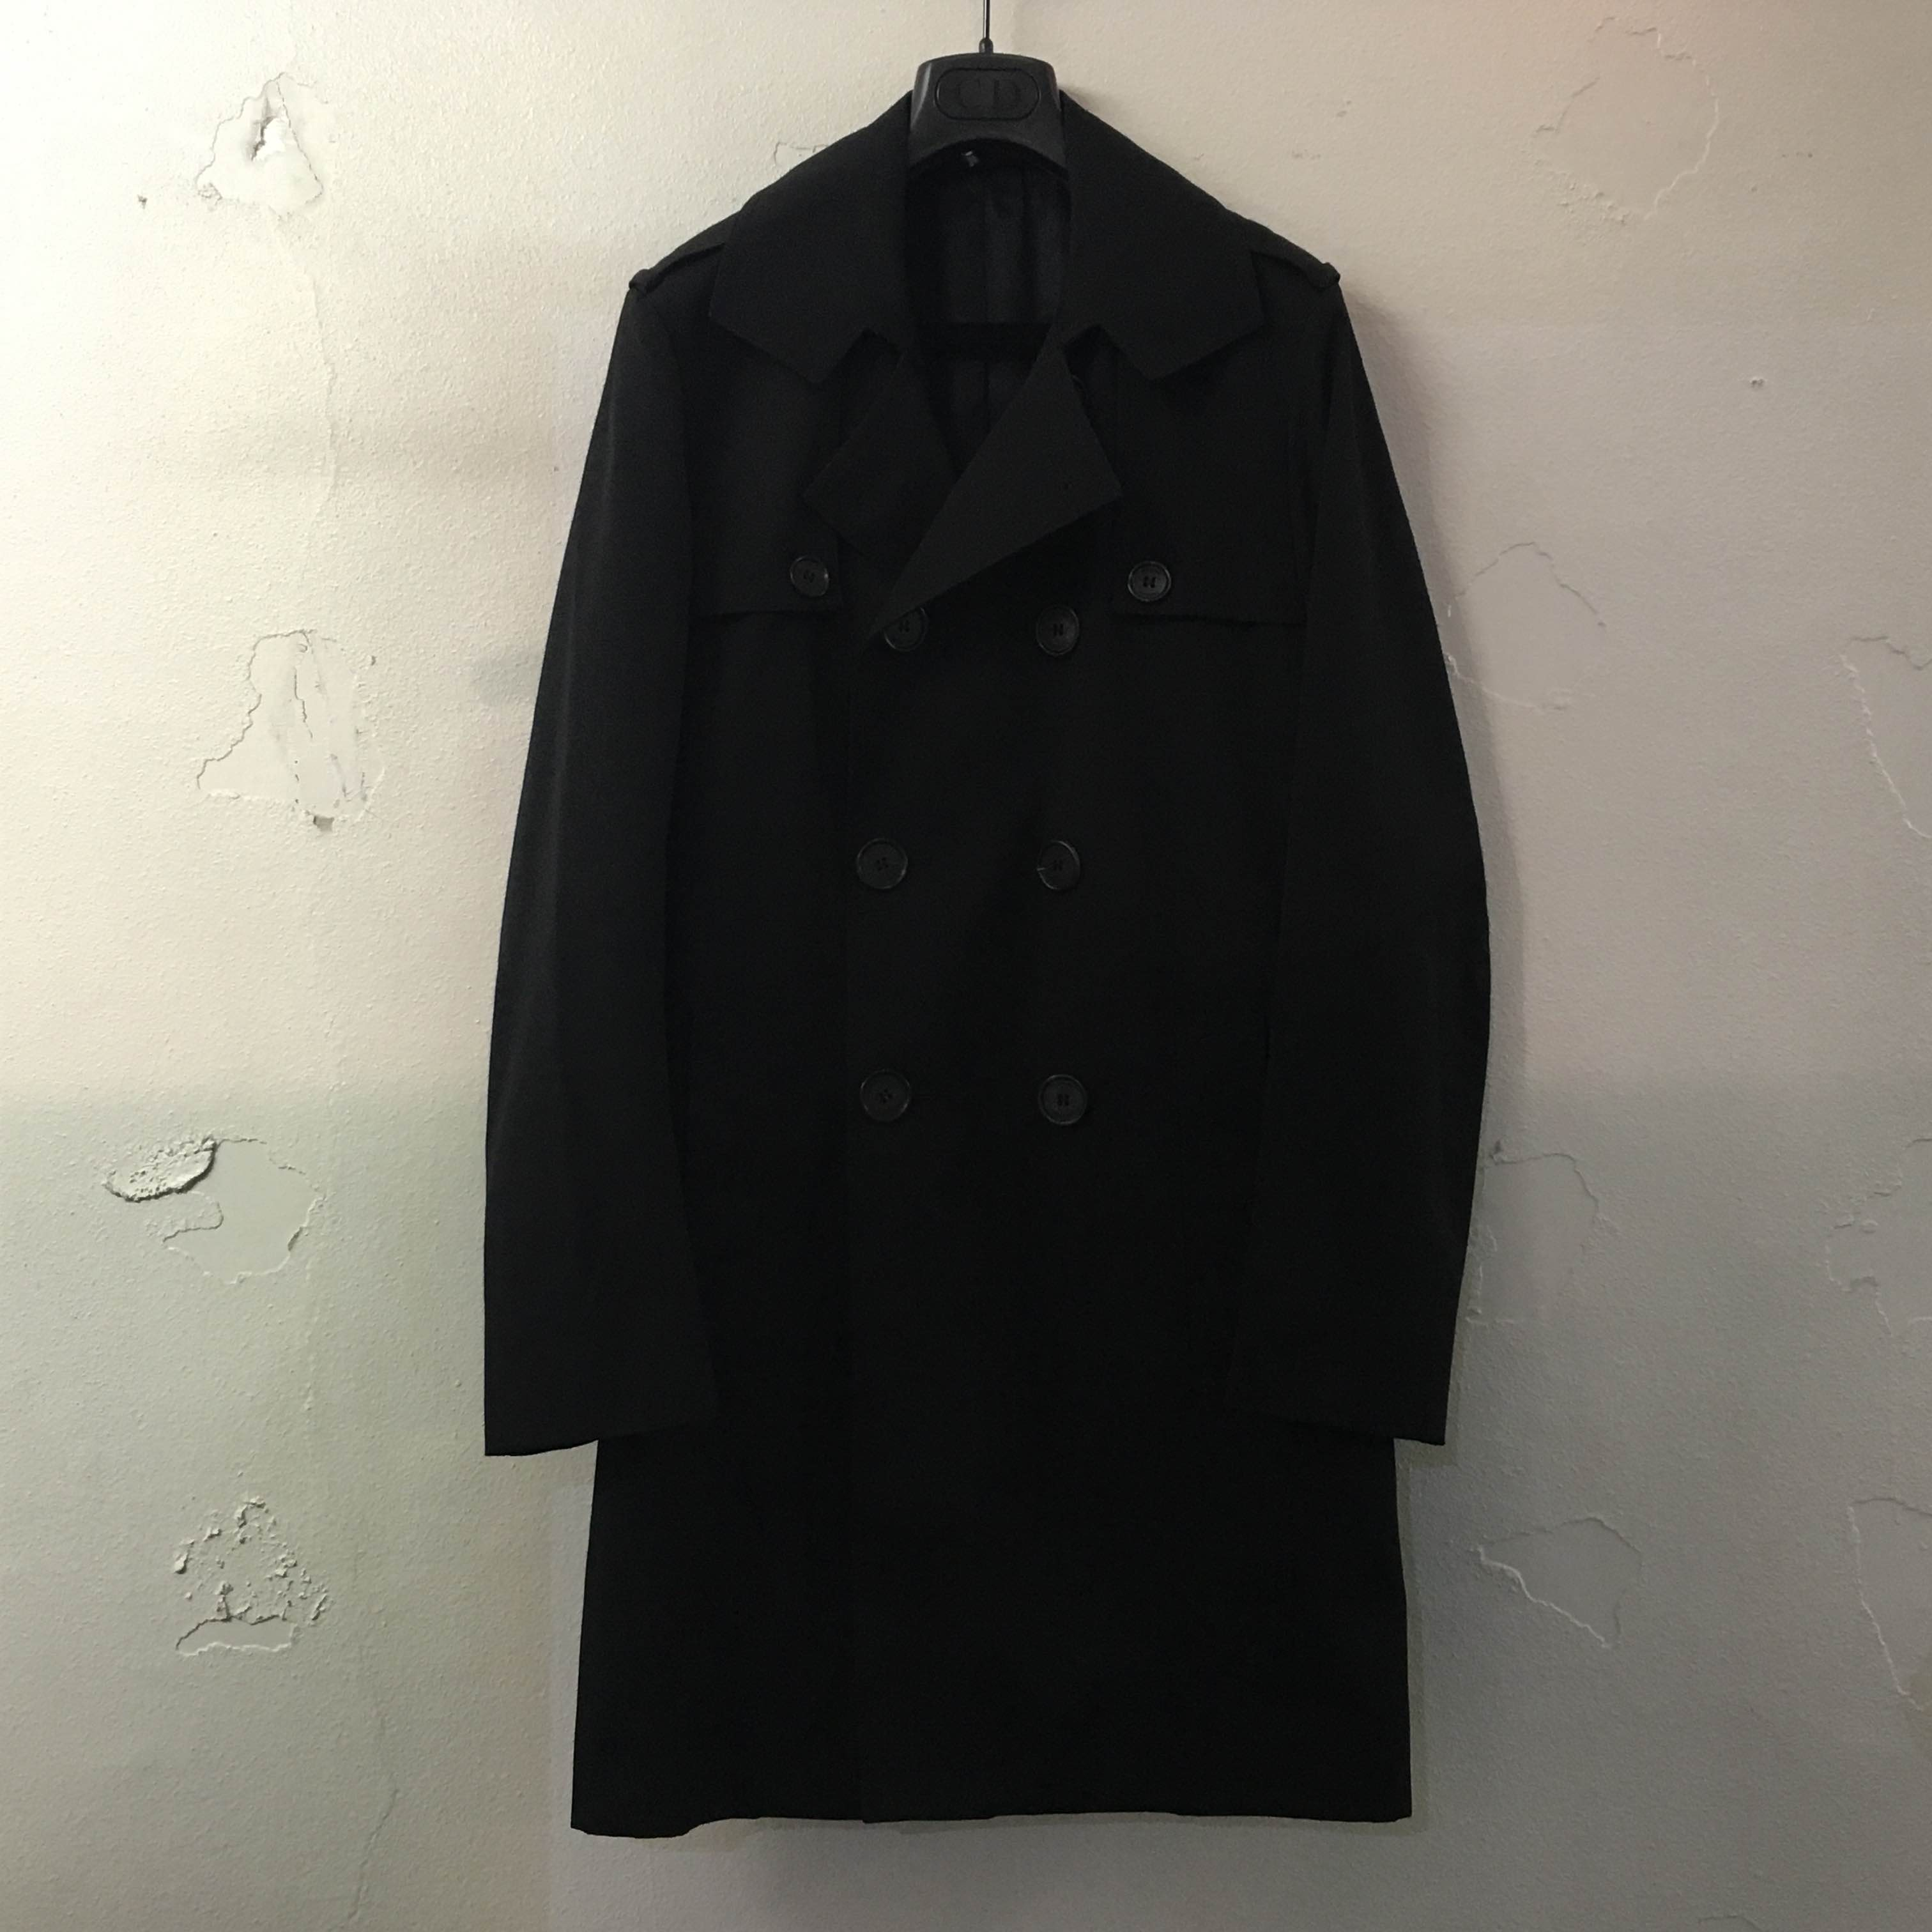 Dior HOMME 07AW ポリコットントレンチコー